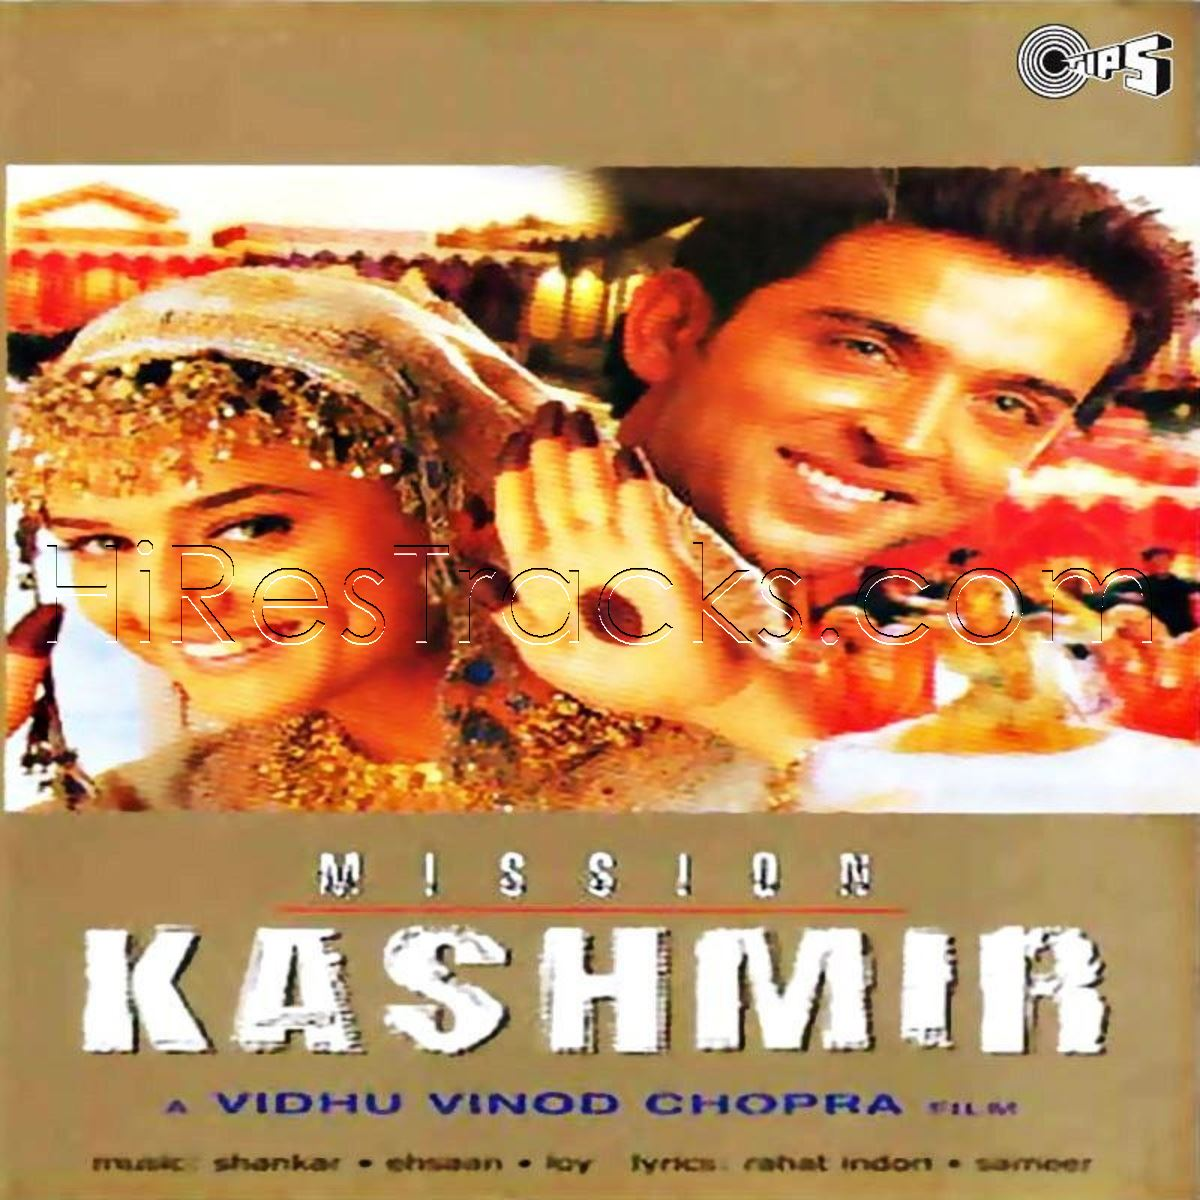 Mission Kashmir (2000) (Shankar Ehsaan Loy) (TIPS Music) [Digital-RIP-FLAC]